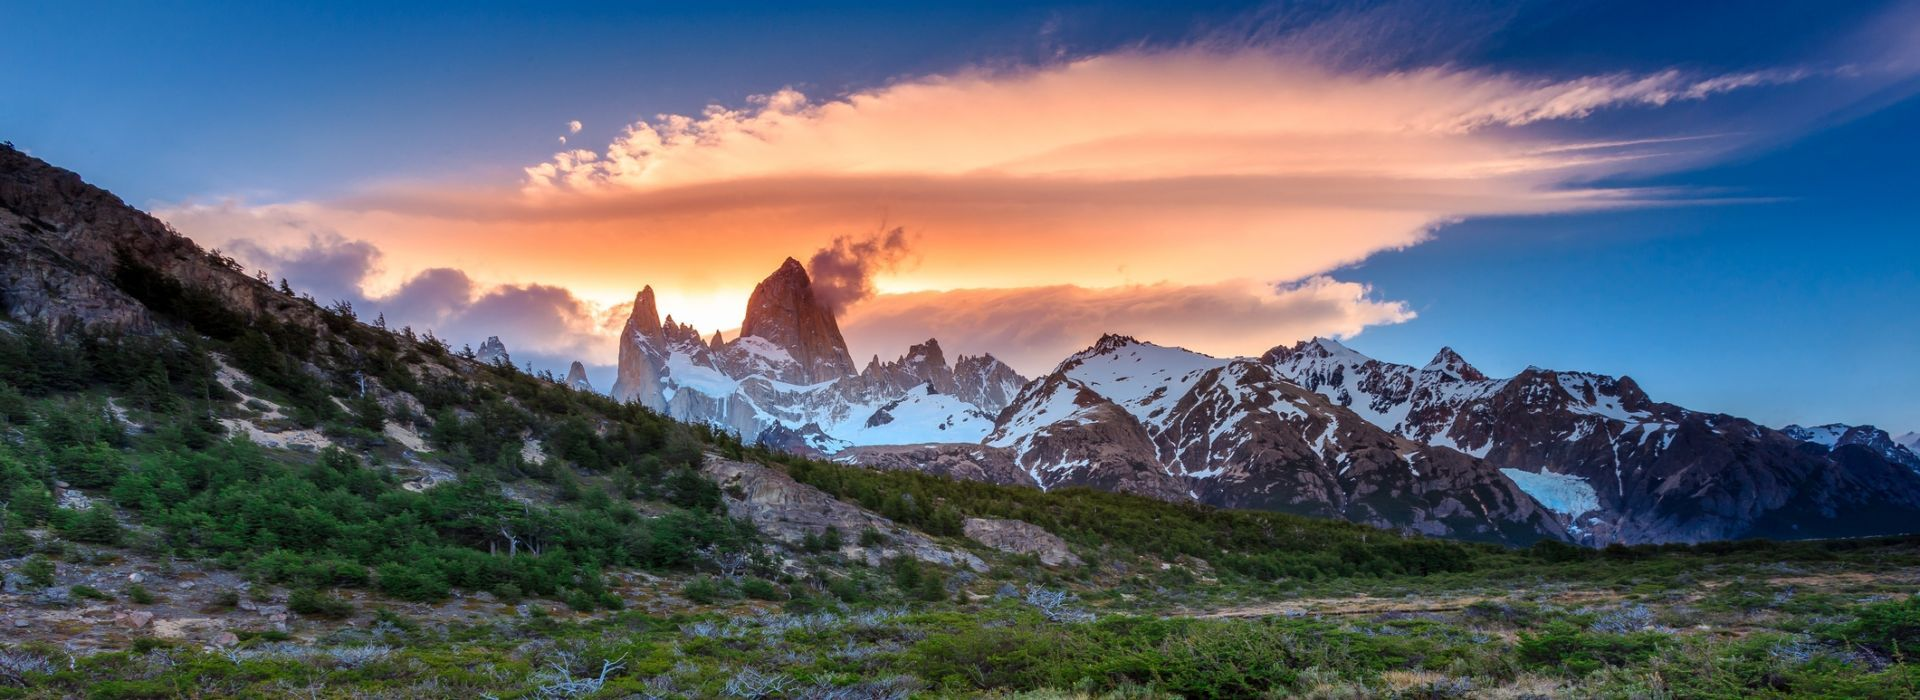 Special interests and hobbies Tours in Argentina